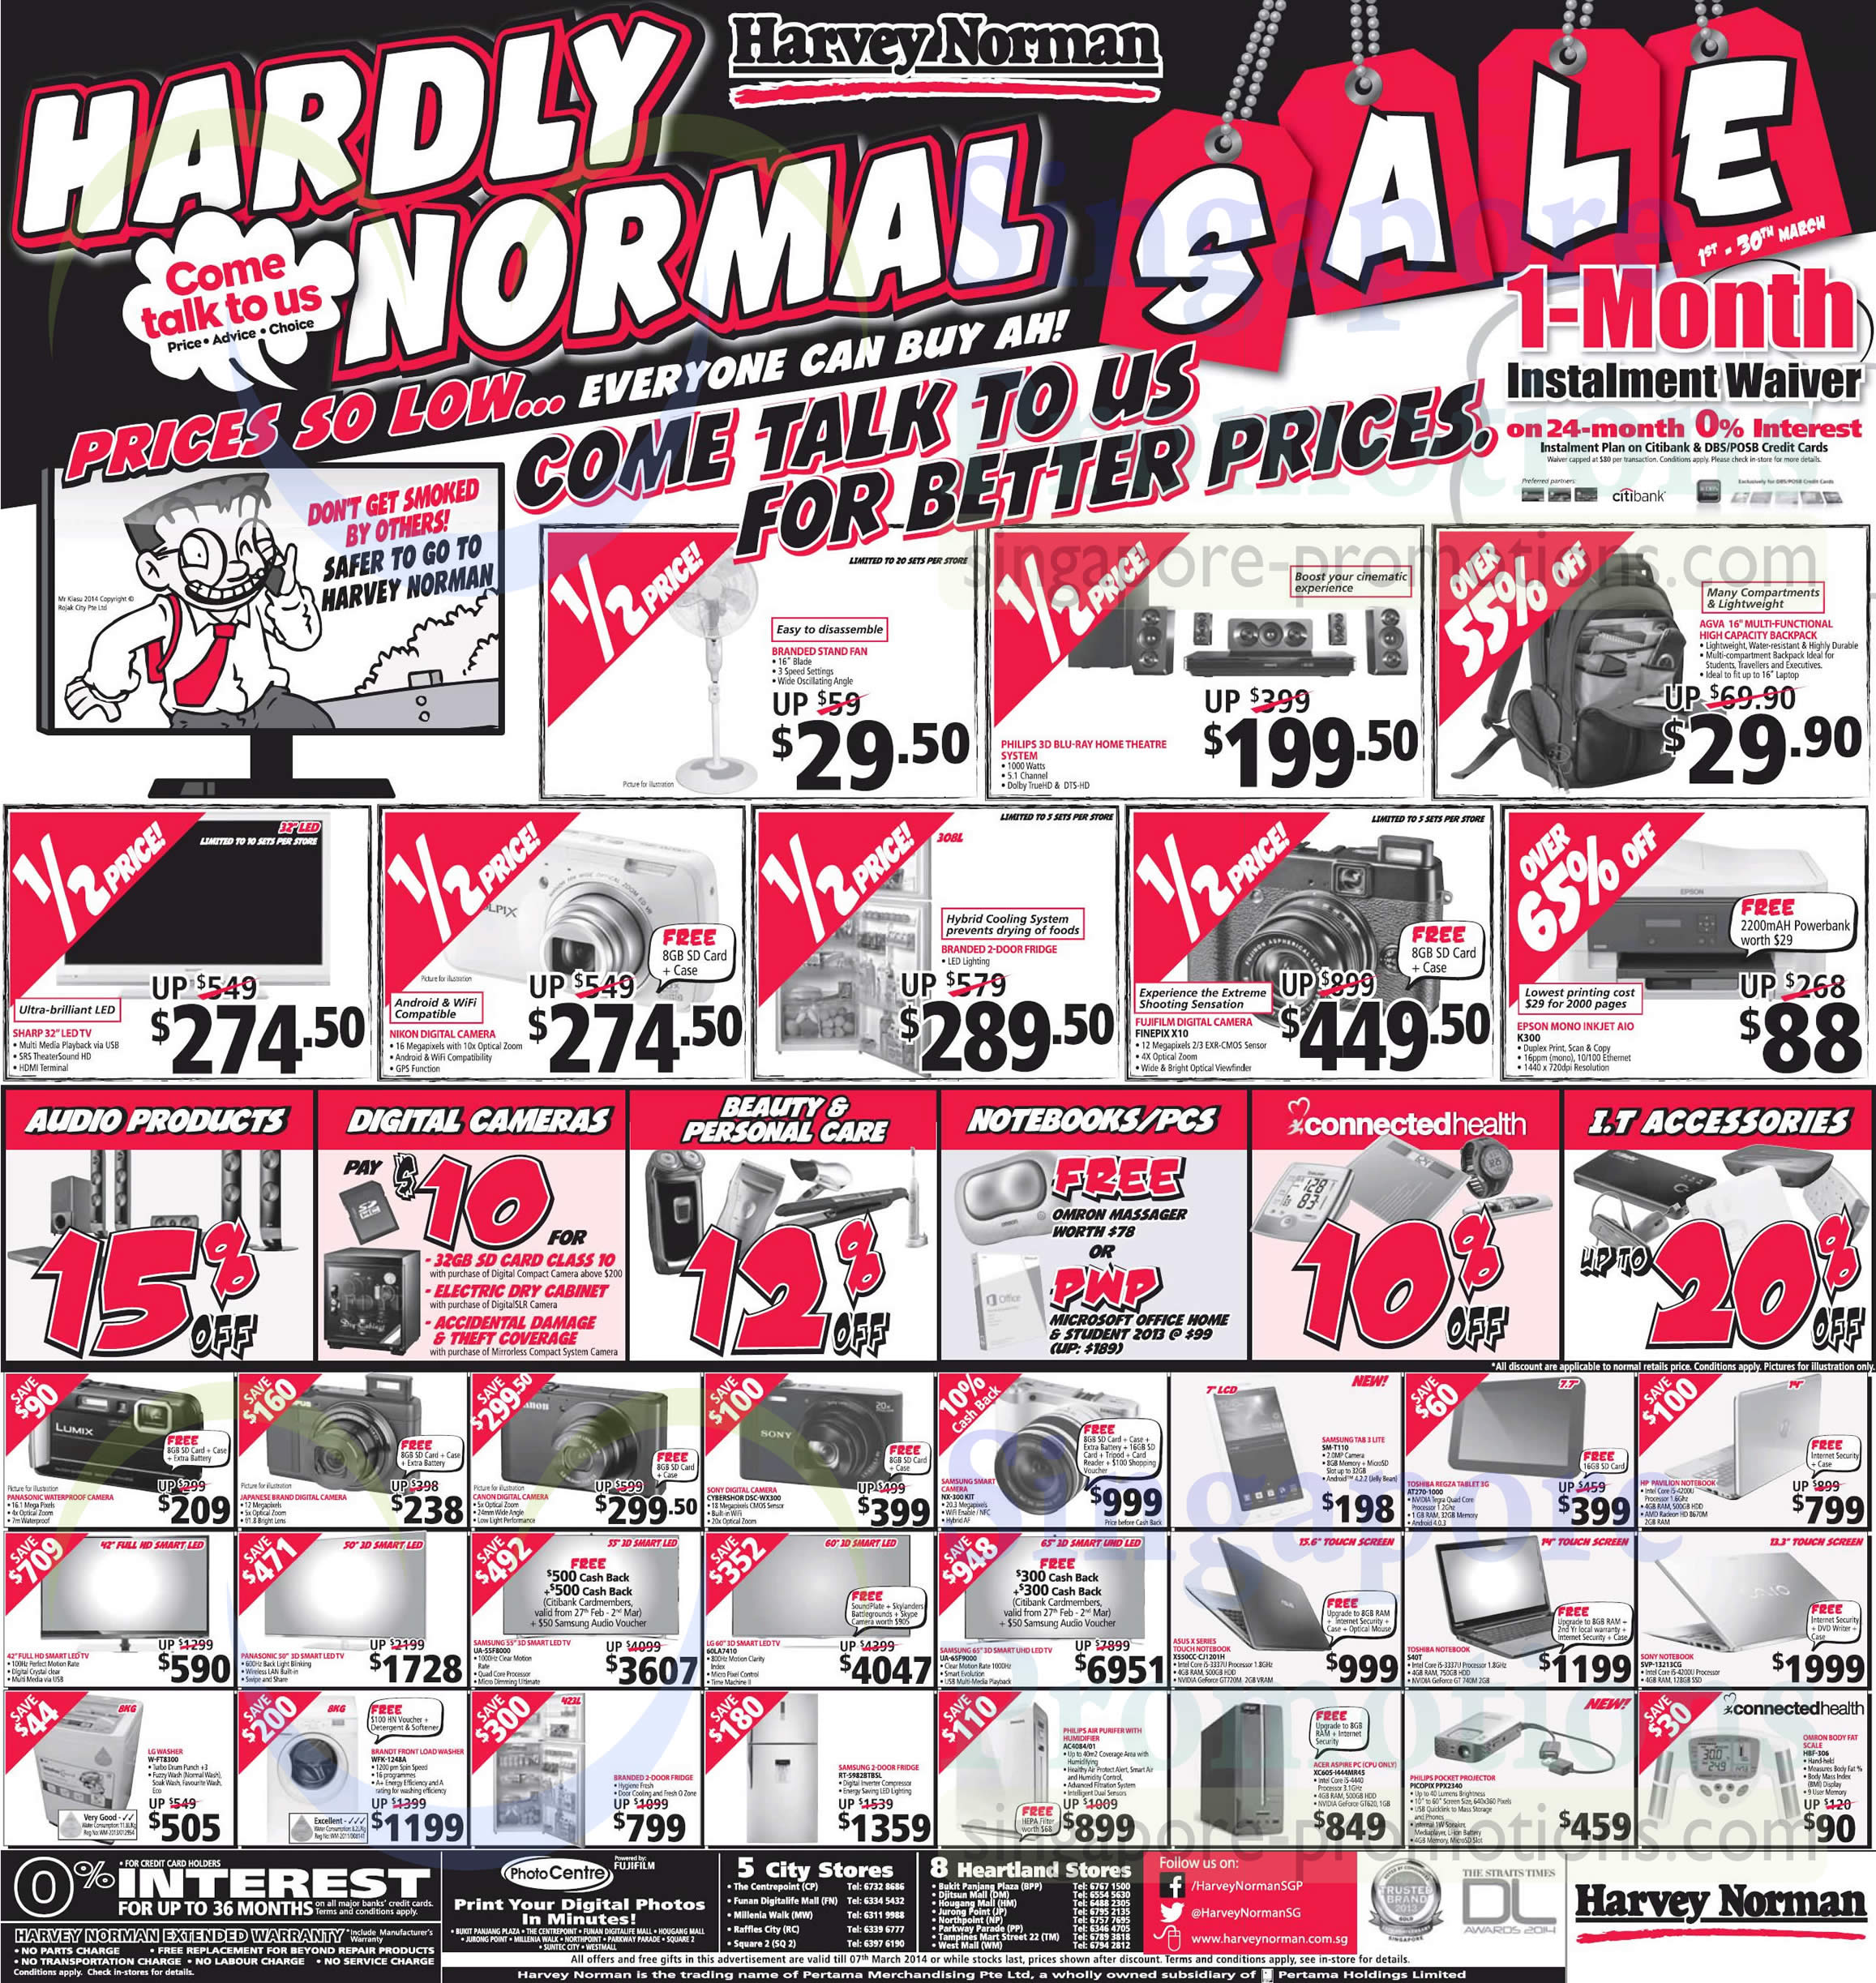 Featured image for Harvey Norman Electronics, Furniture, Bedding & Other Offers 1 - 7 Mar 2014